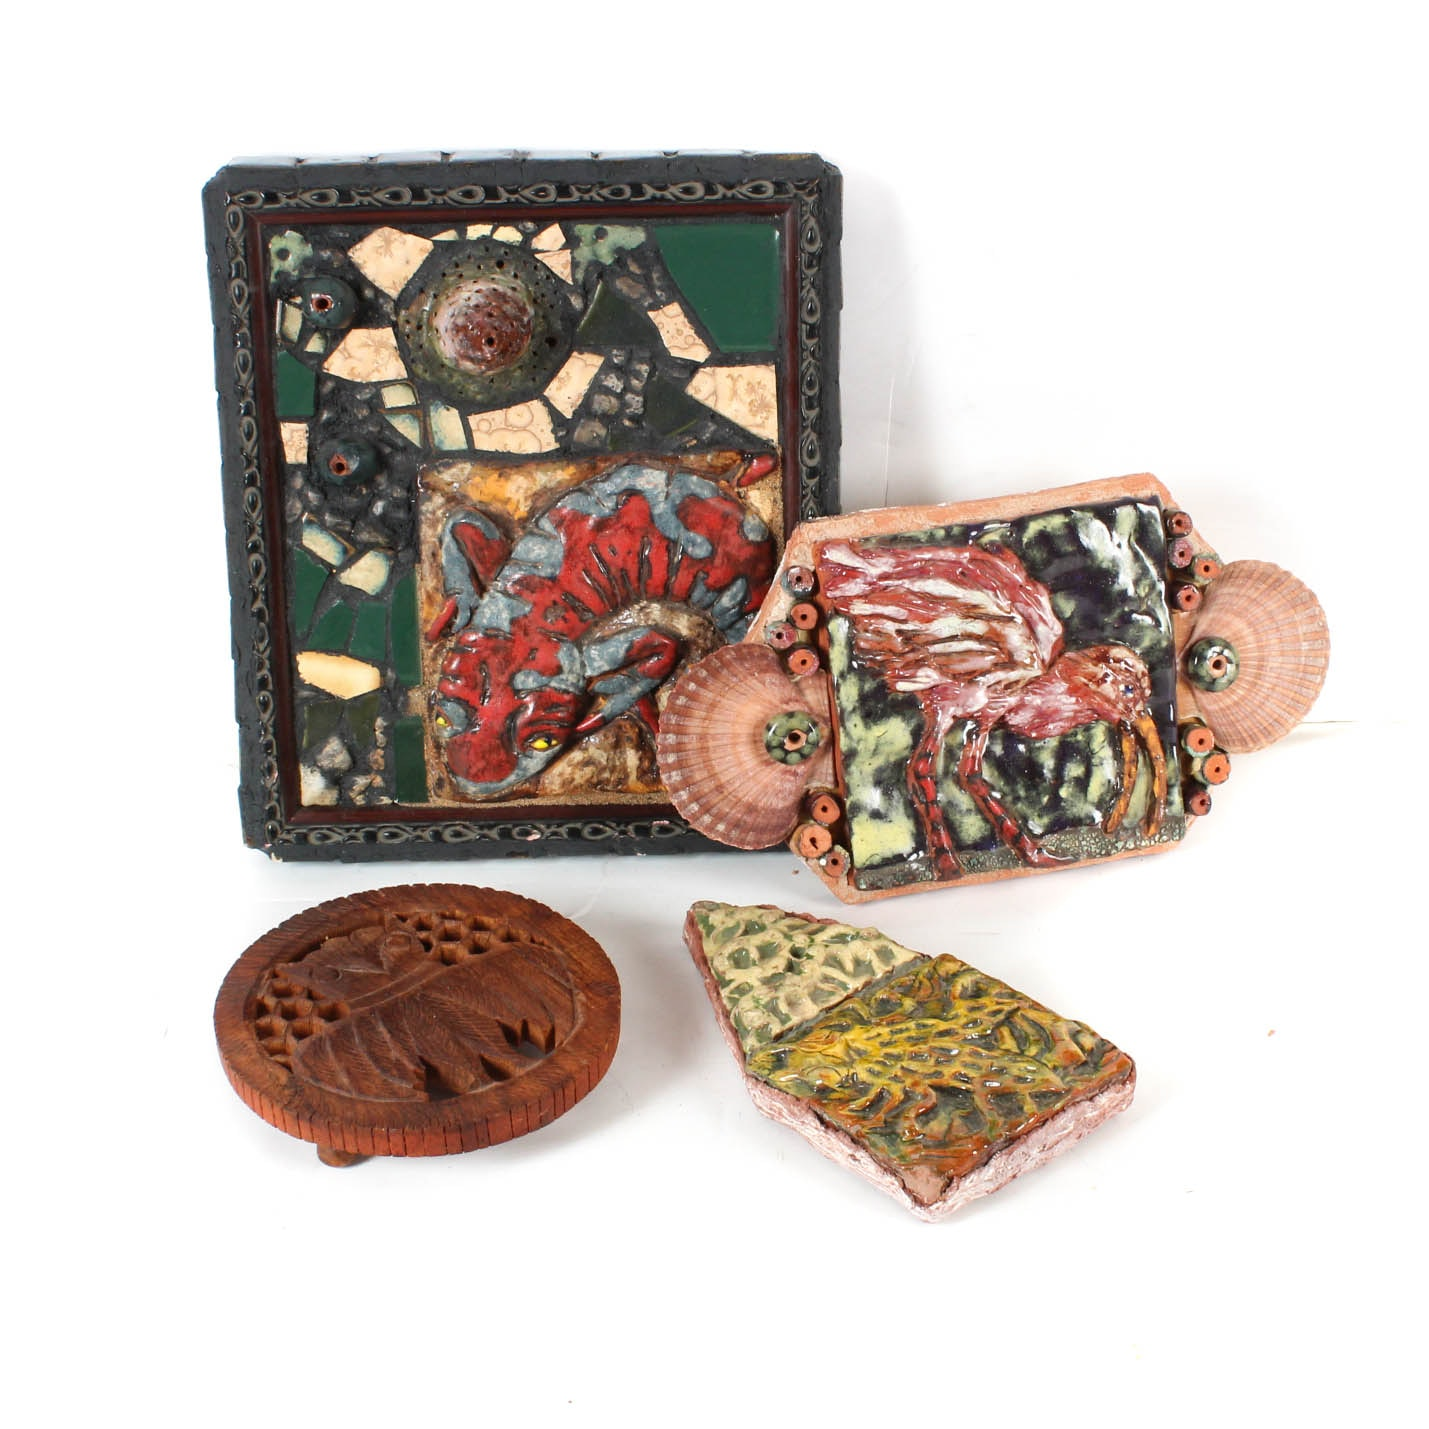 Beautiful Antique Wall Decor in Art, Home Furnishings, Décor & More  IZ75